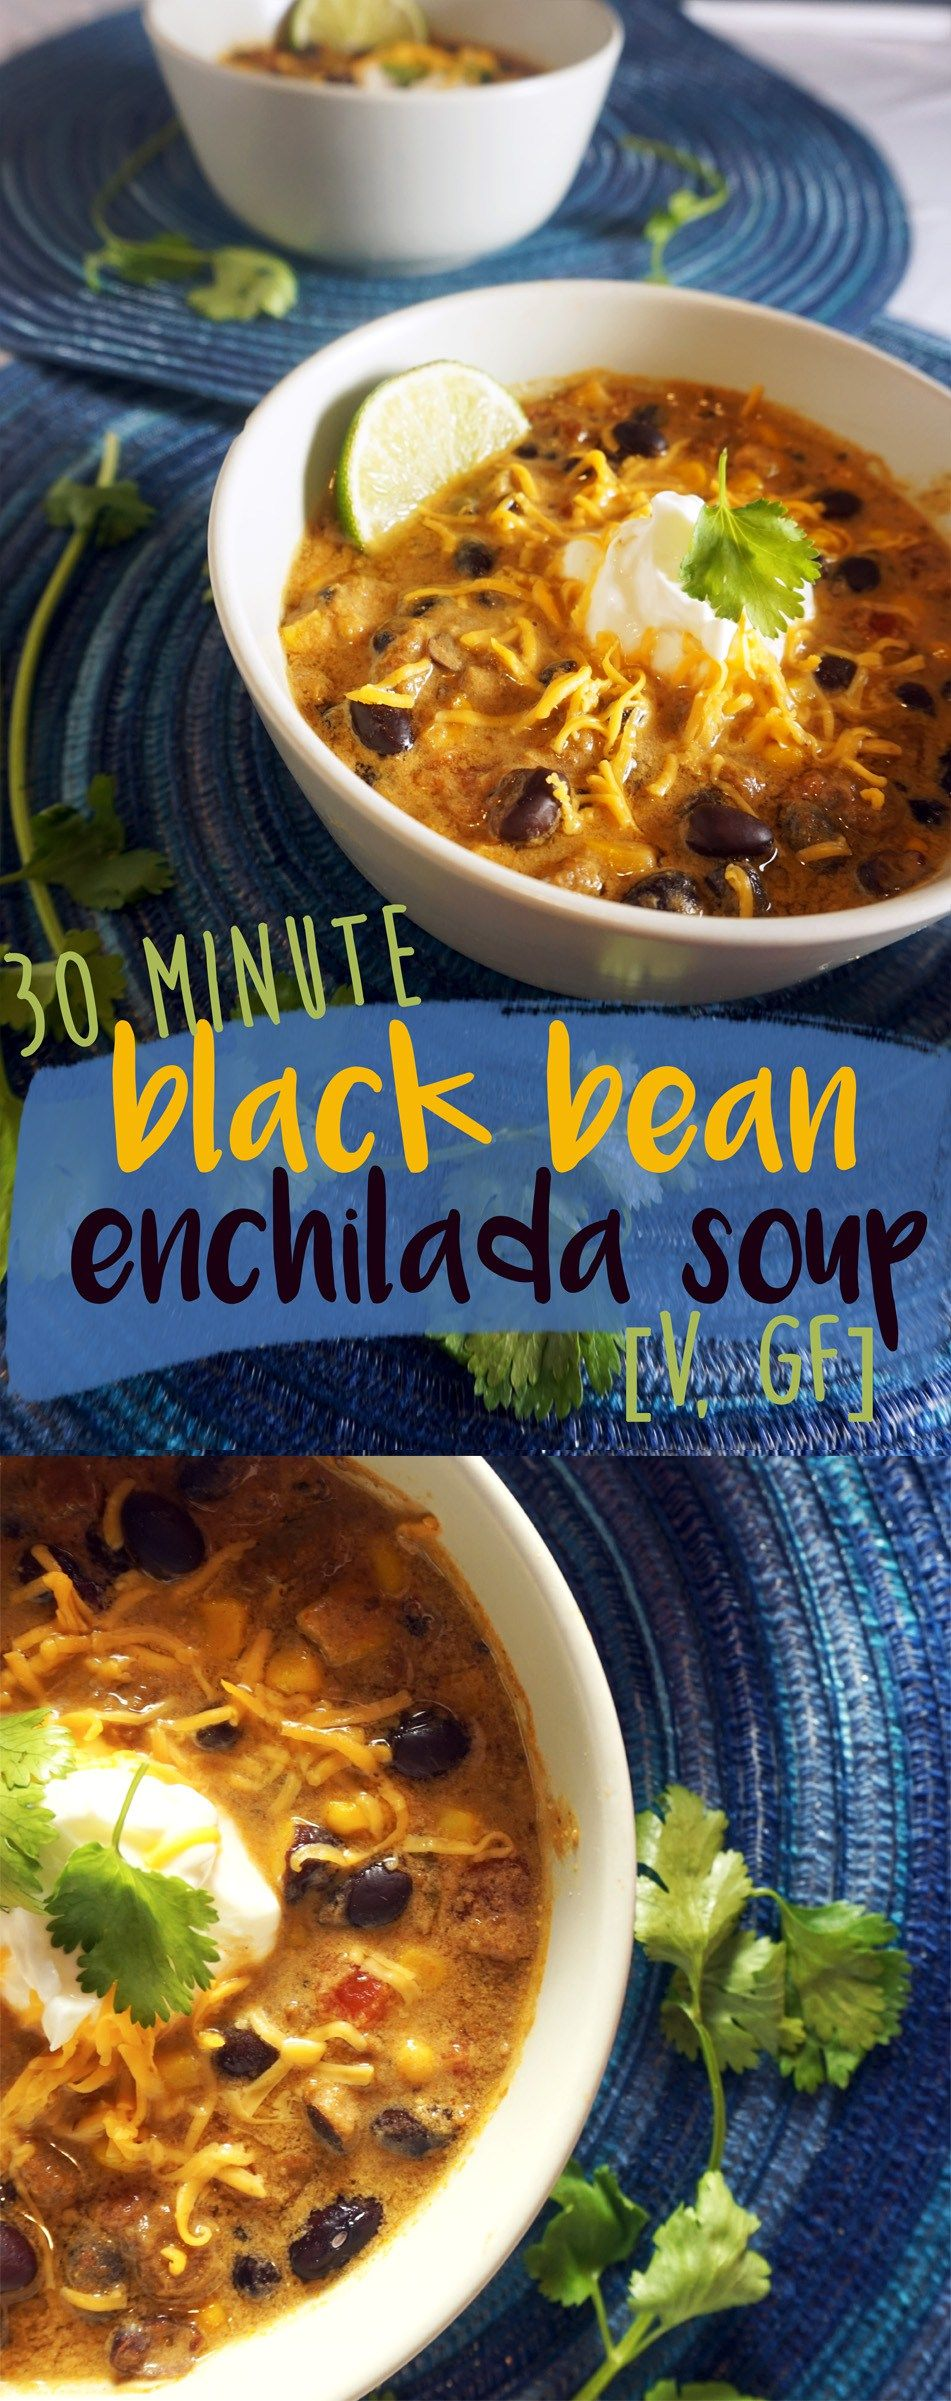 Beefy, cheesy, and packed with protein, this hearty enchilada soup combines all the flavors of enchiladas into one bowl. Done in 30 minutes and requiring zero prep work, this soup is as easy as it is delicious.